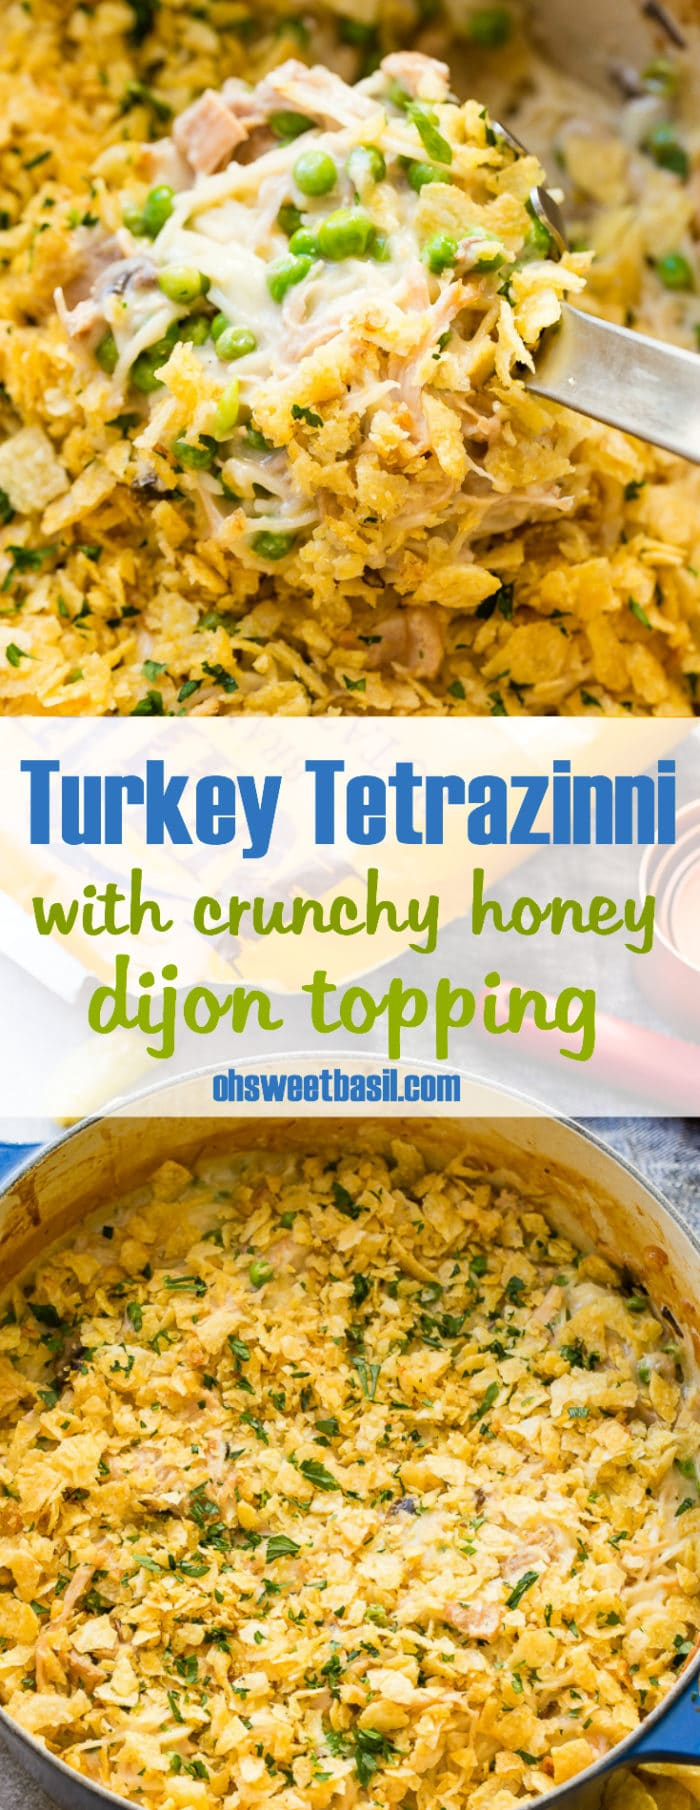 Turkey Tetrazzini in a large pot